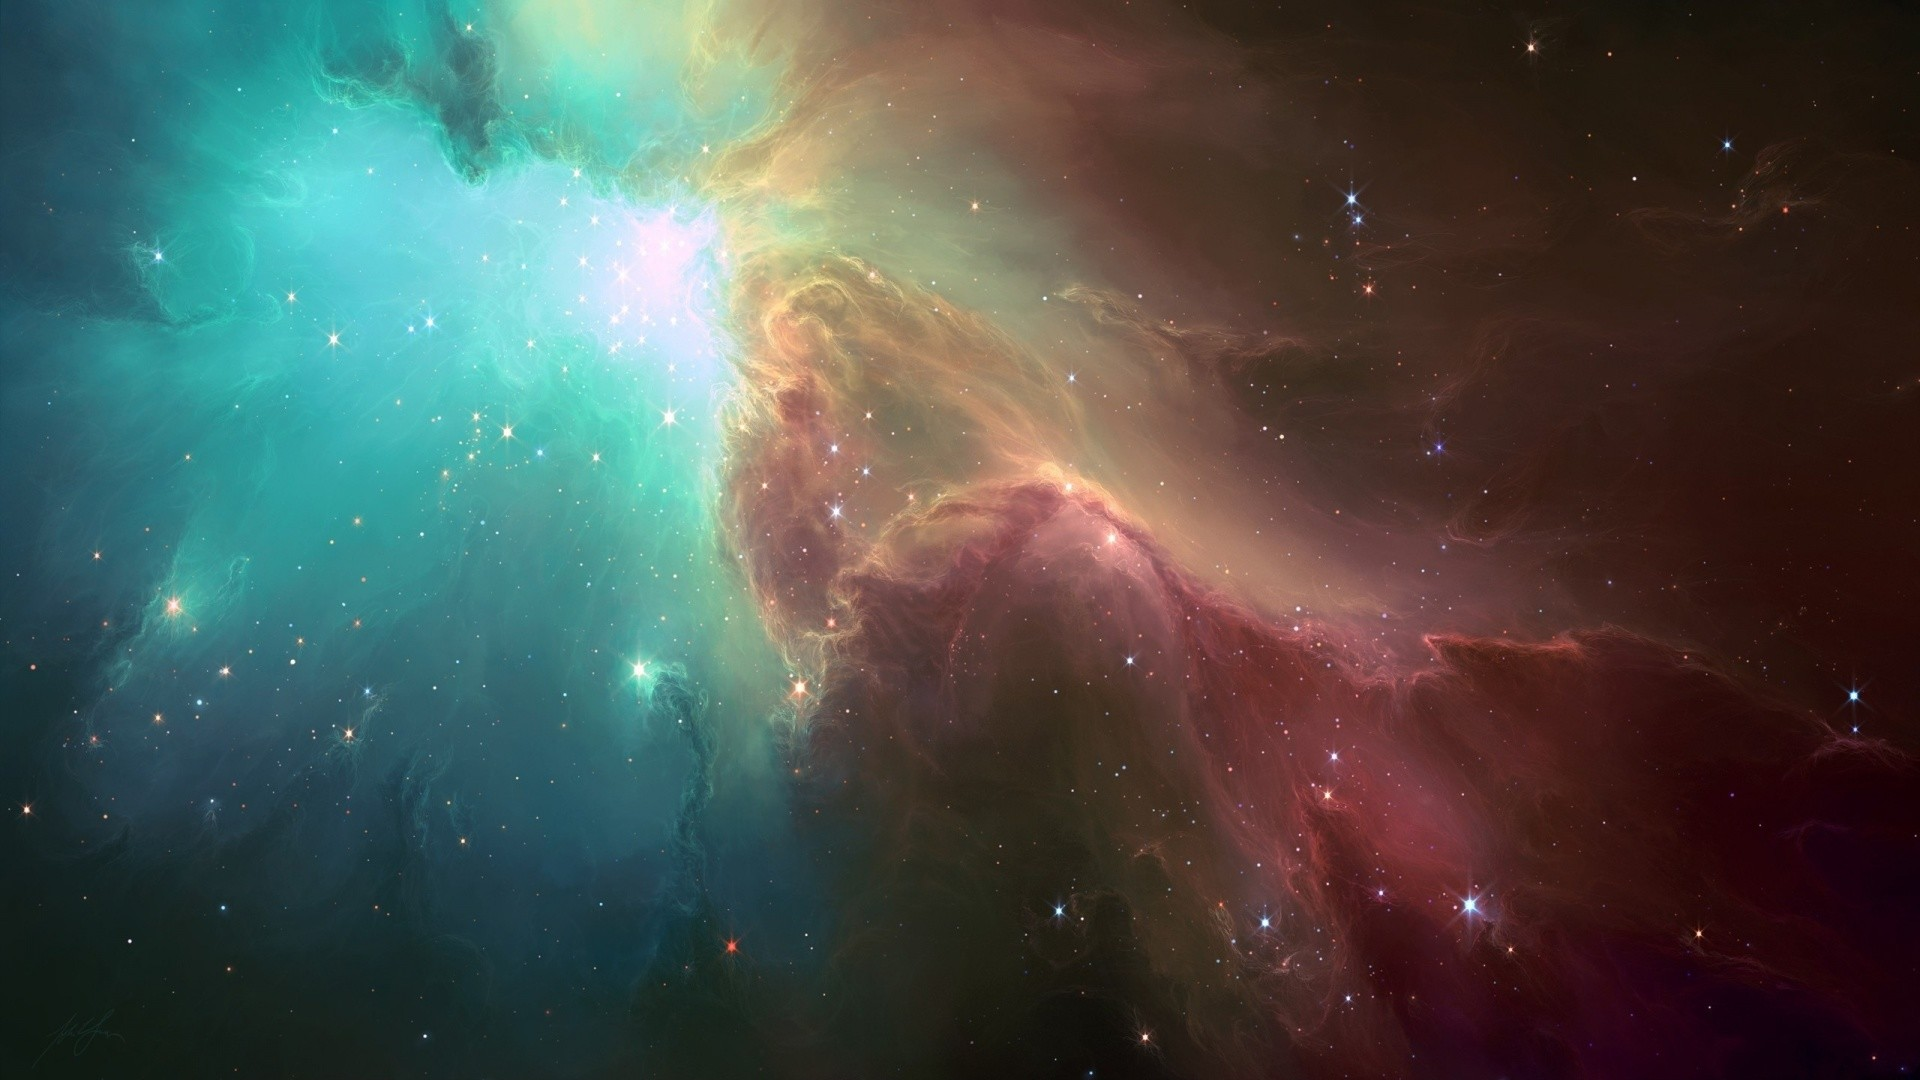 The Ghost Nebula. How to set wallpaper on your desktop? Click the  download link from above and set the wallpaper on the desktop from your OS.